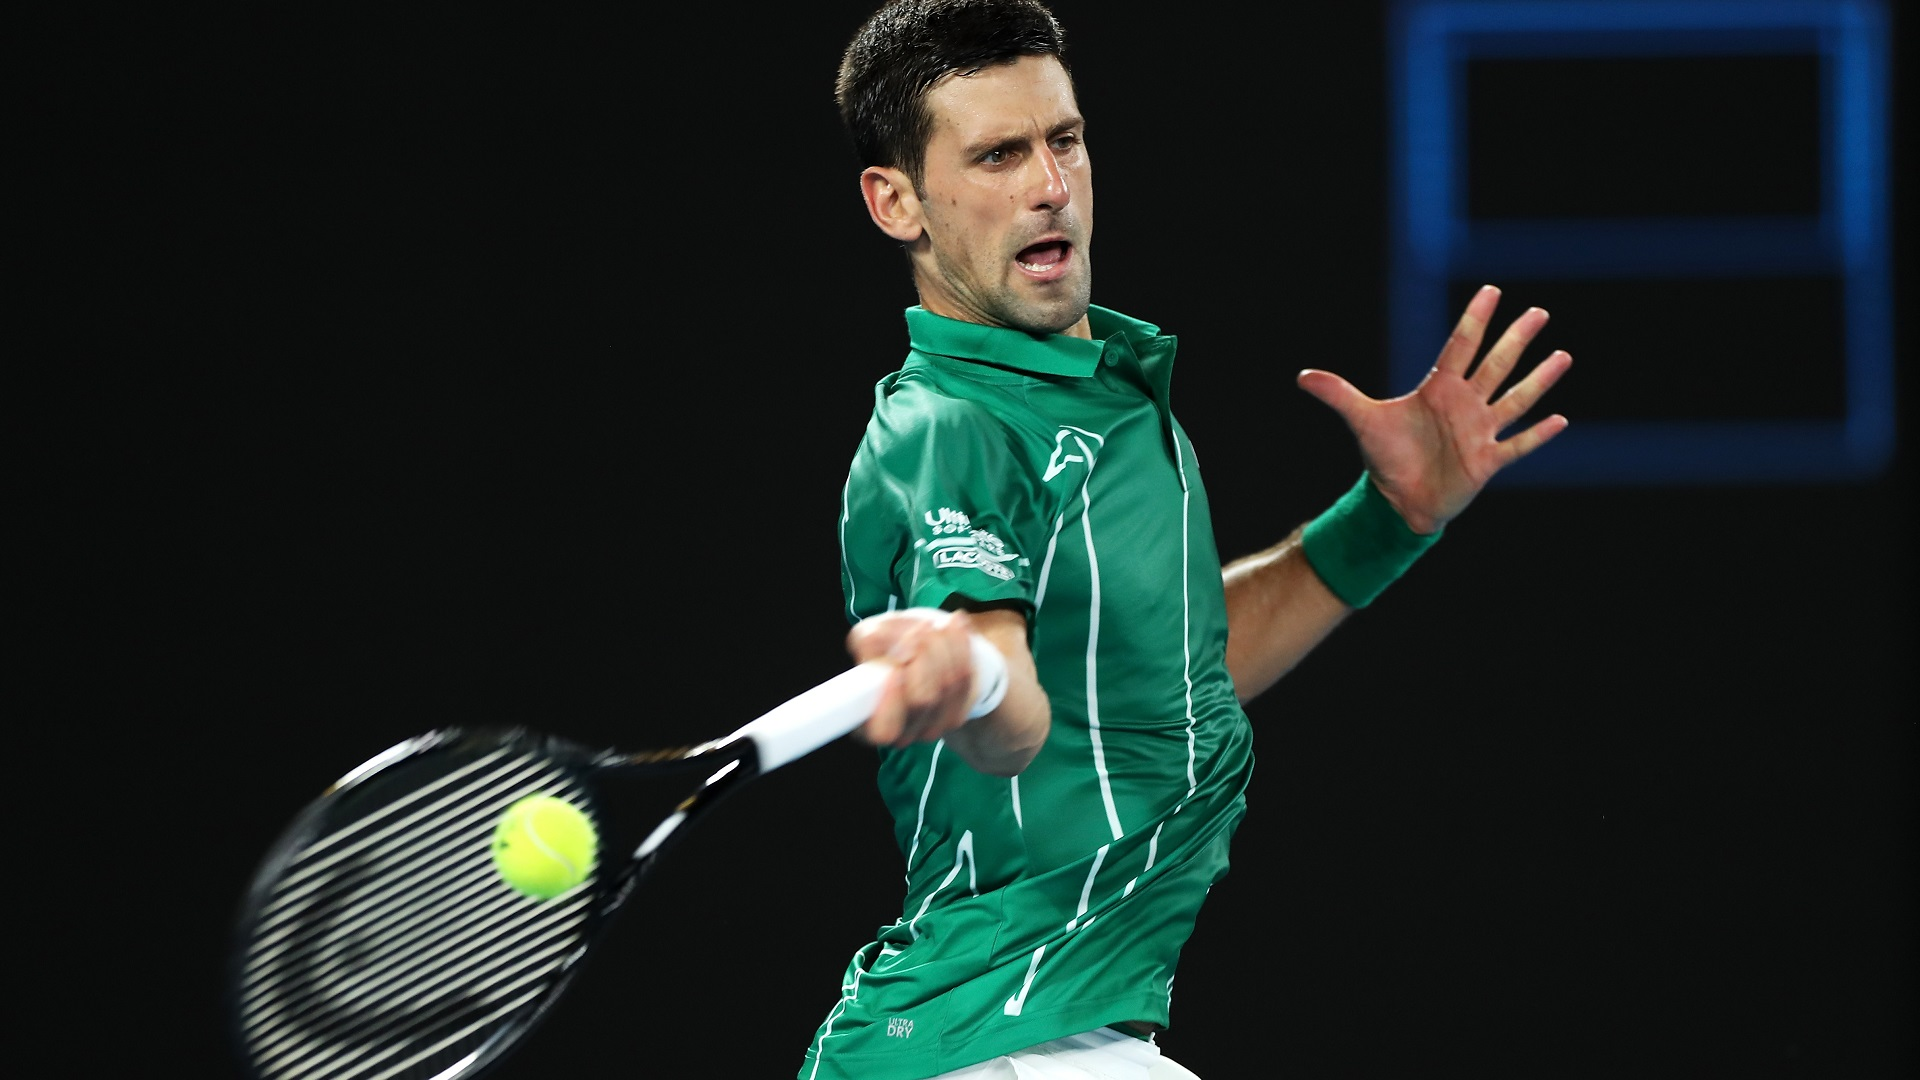 Australian Open 2020 Novak Djokovic overcomes wobble to progress 1920x1080